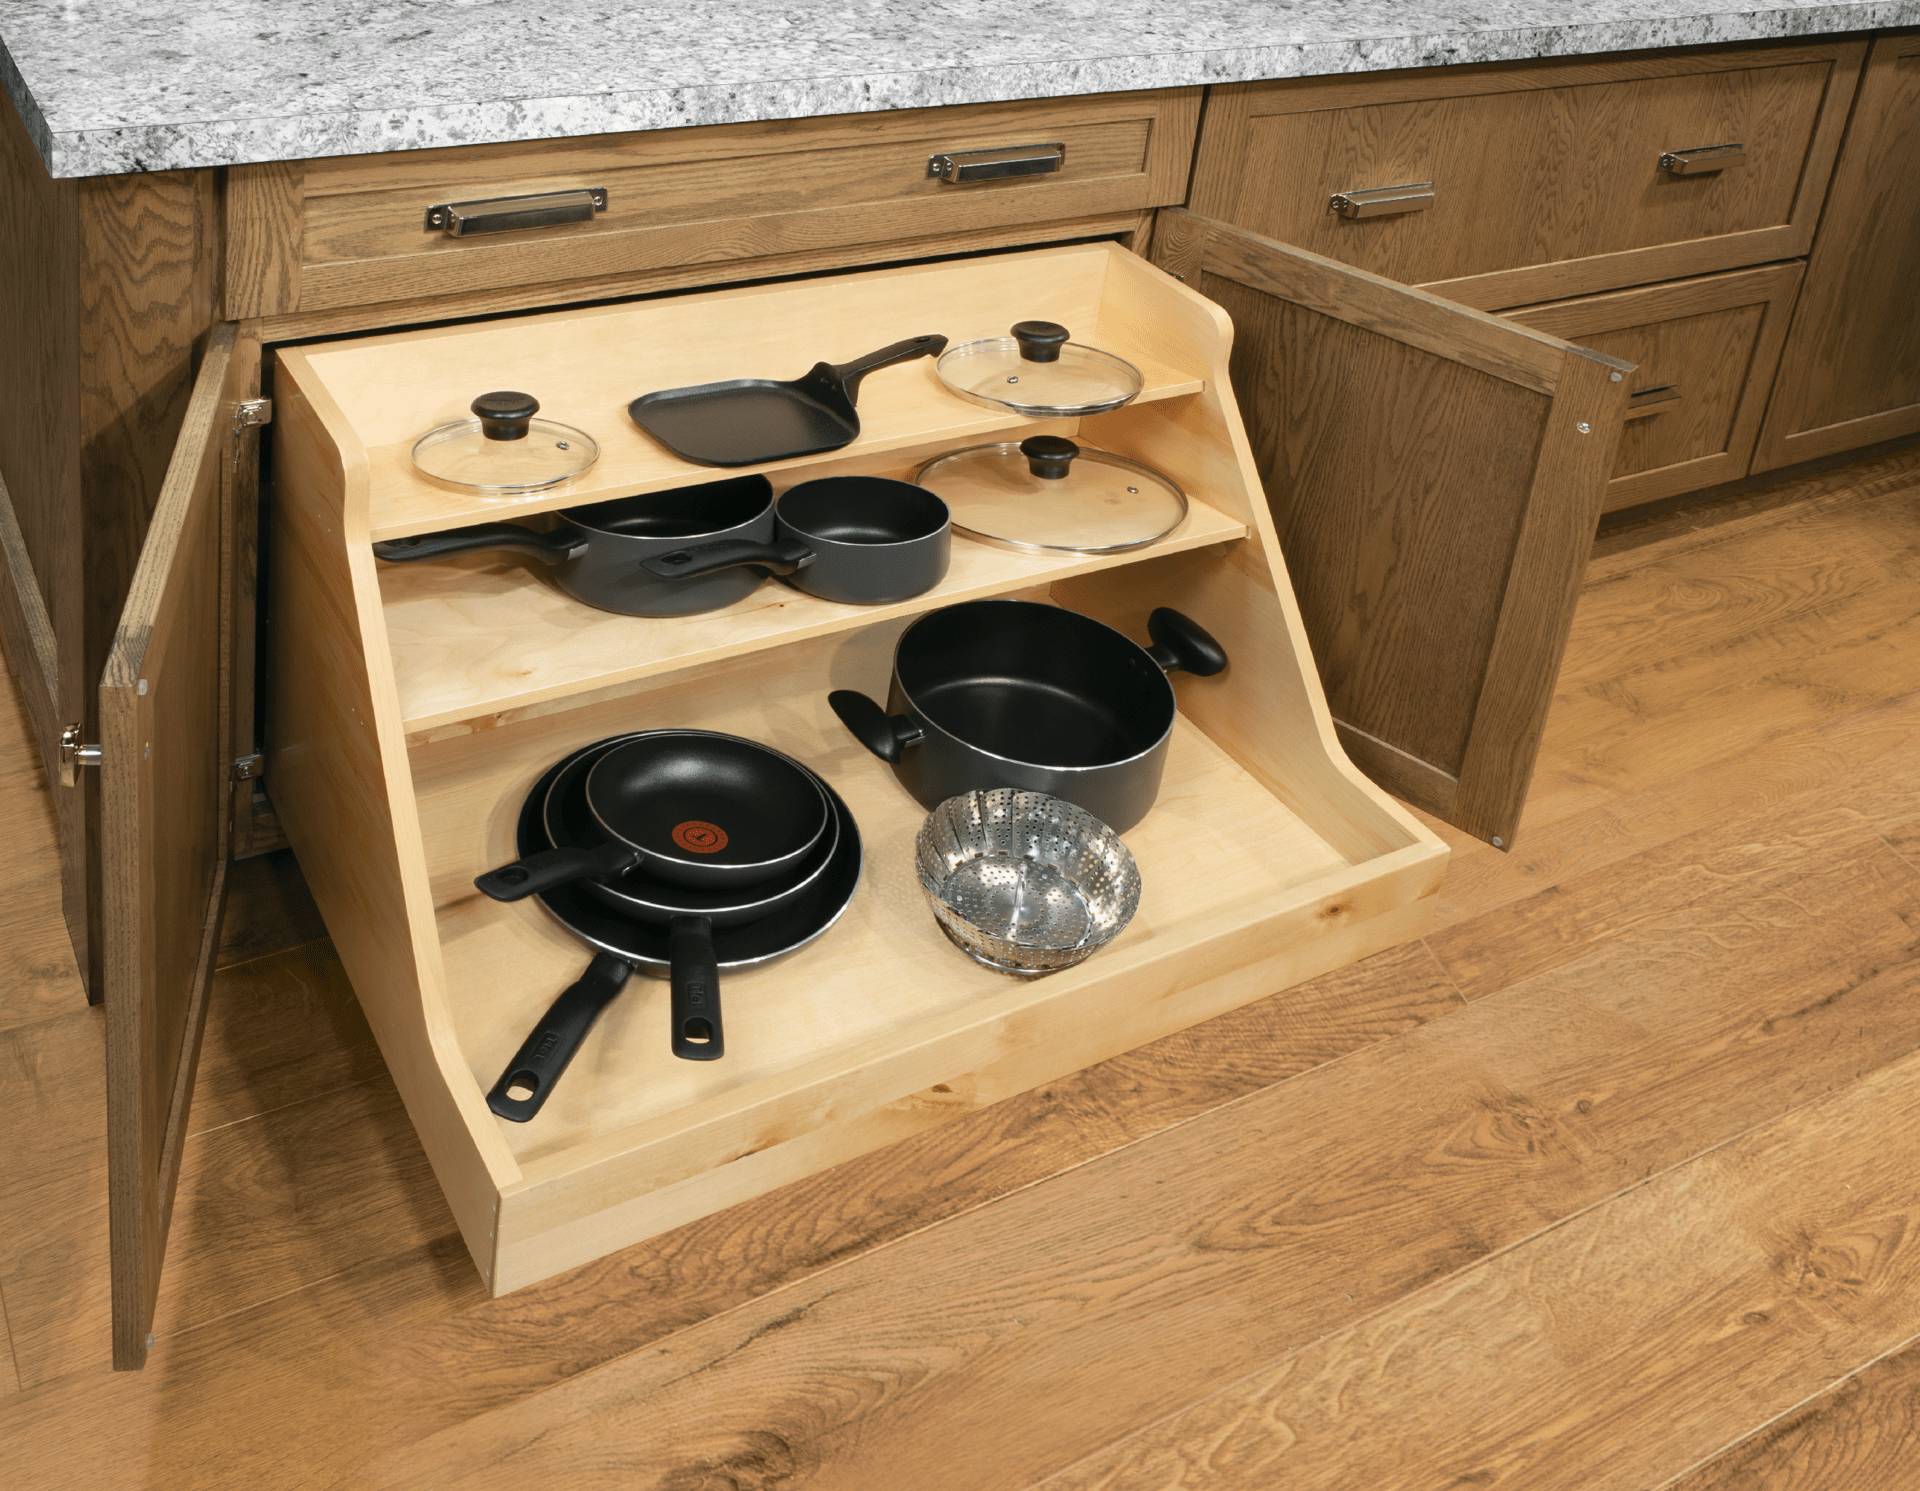 Base With Pots And Pans Organizer Cardell Cabinetry